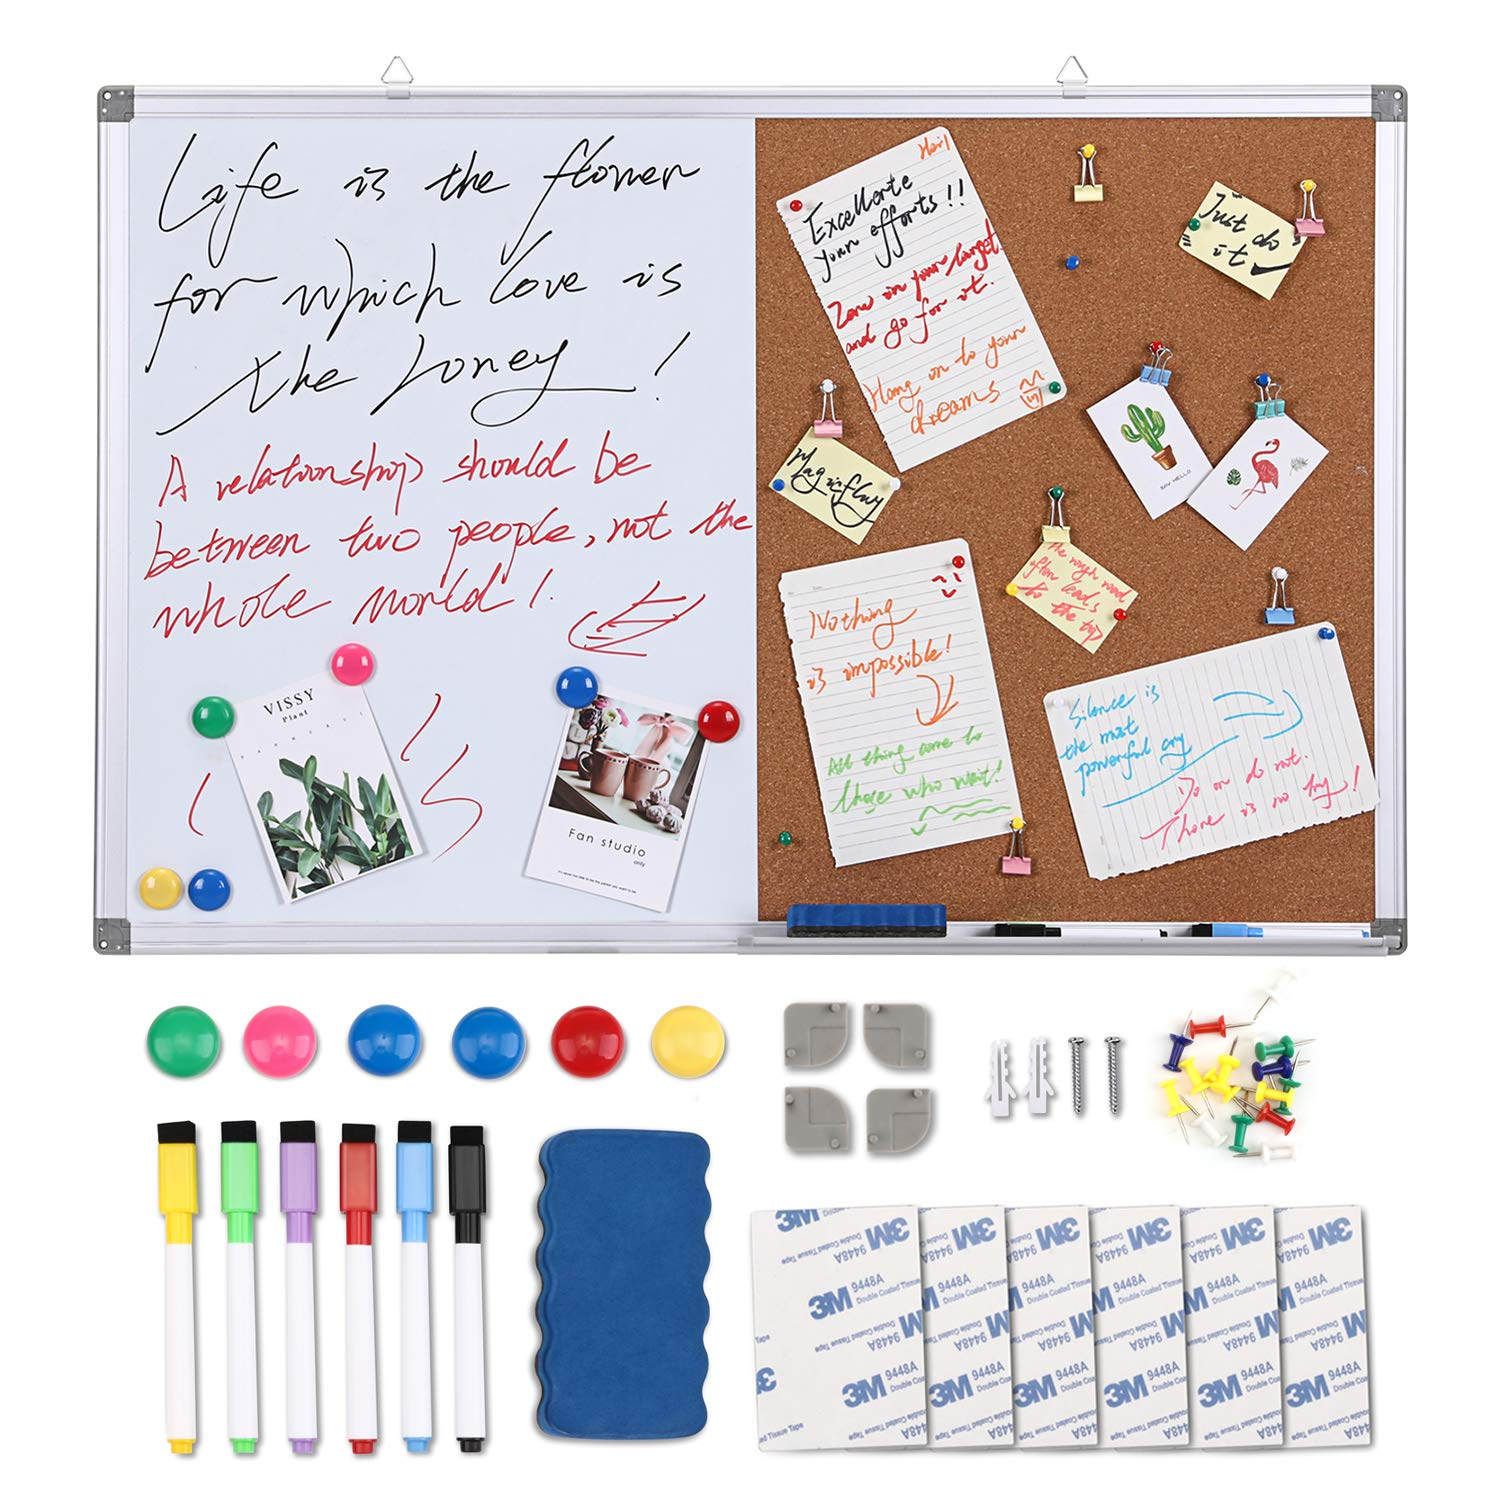 Magicfly 36 x 24 inch Cork/Dry Erase Combo Board, Magnetic Whiteboard Bulletin Board Set with 6 Water Based Marker+6 Magnets+1 Magnetic Eraser+ 20 Push Pins for Home/Office